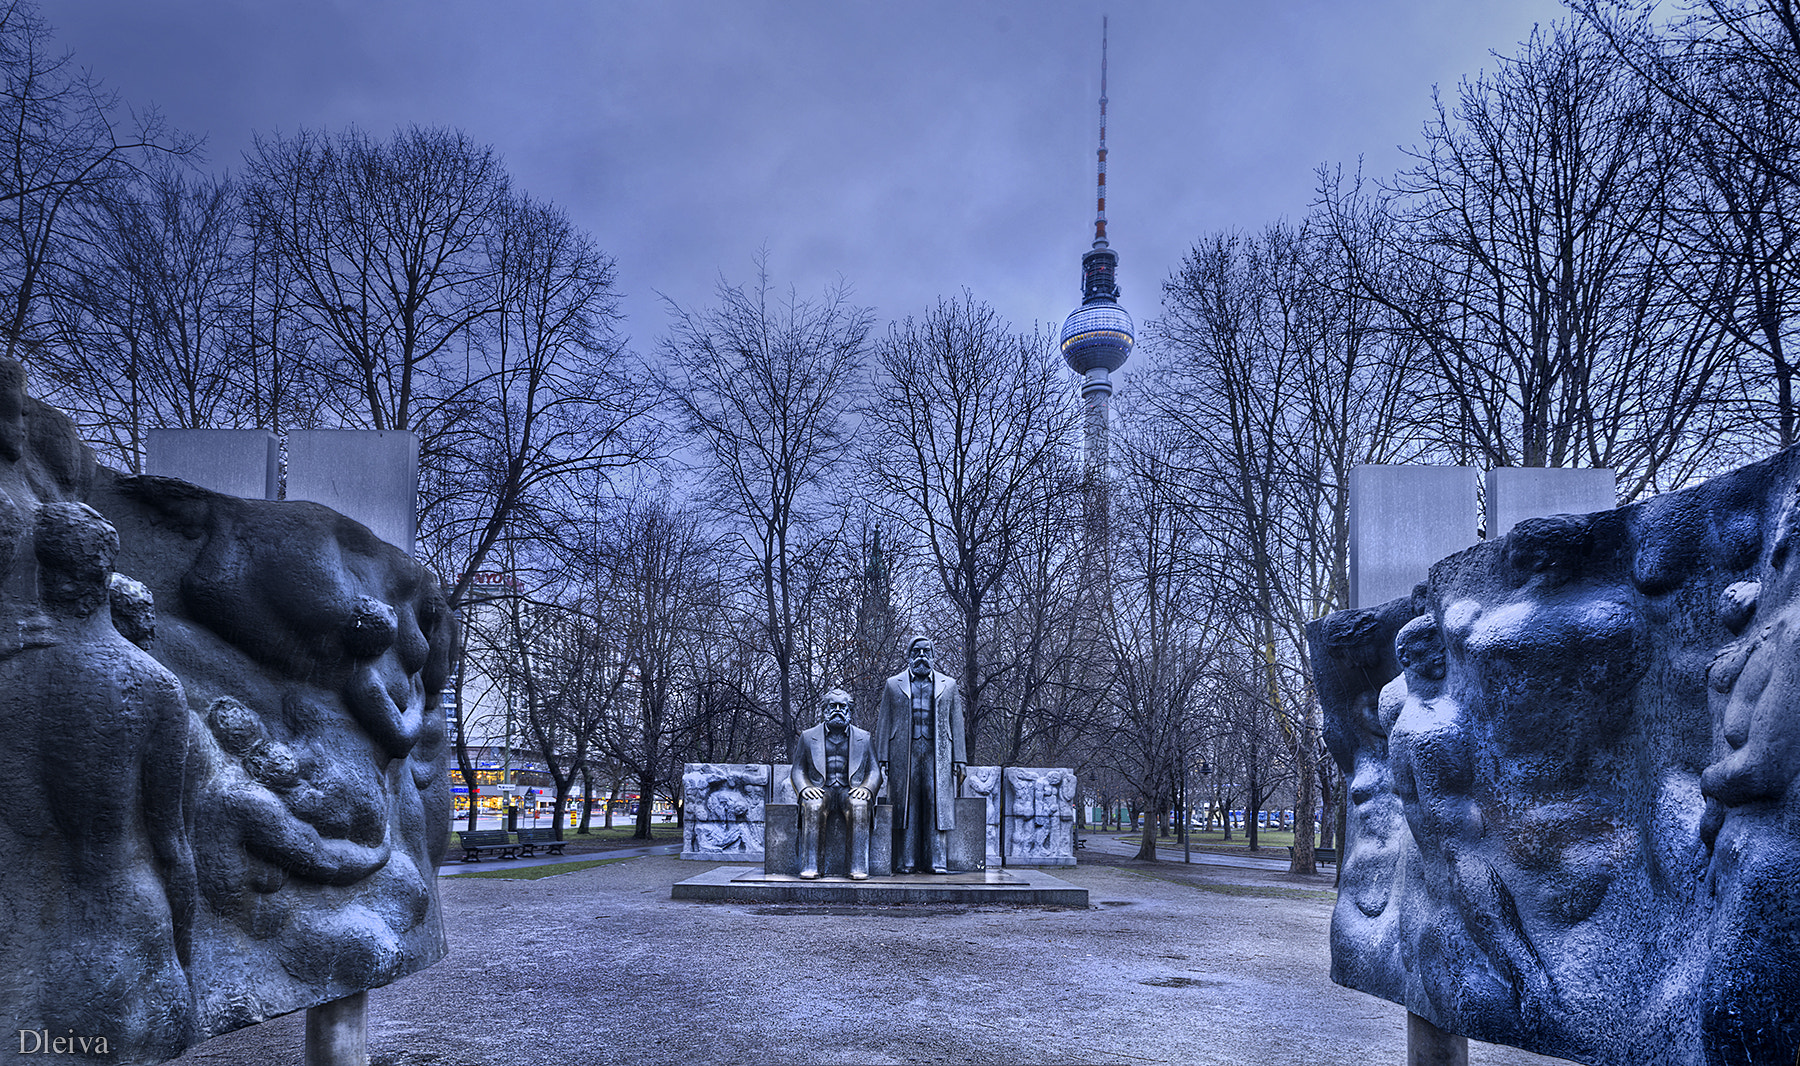 Photograph Marx Engels forum (Berlin) by Domingo Leiva on 500px